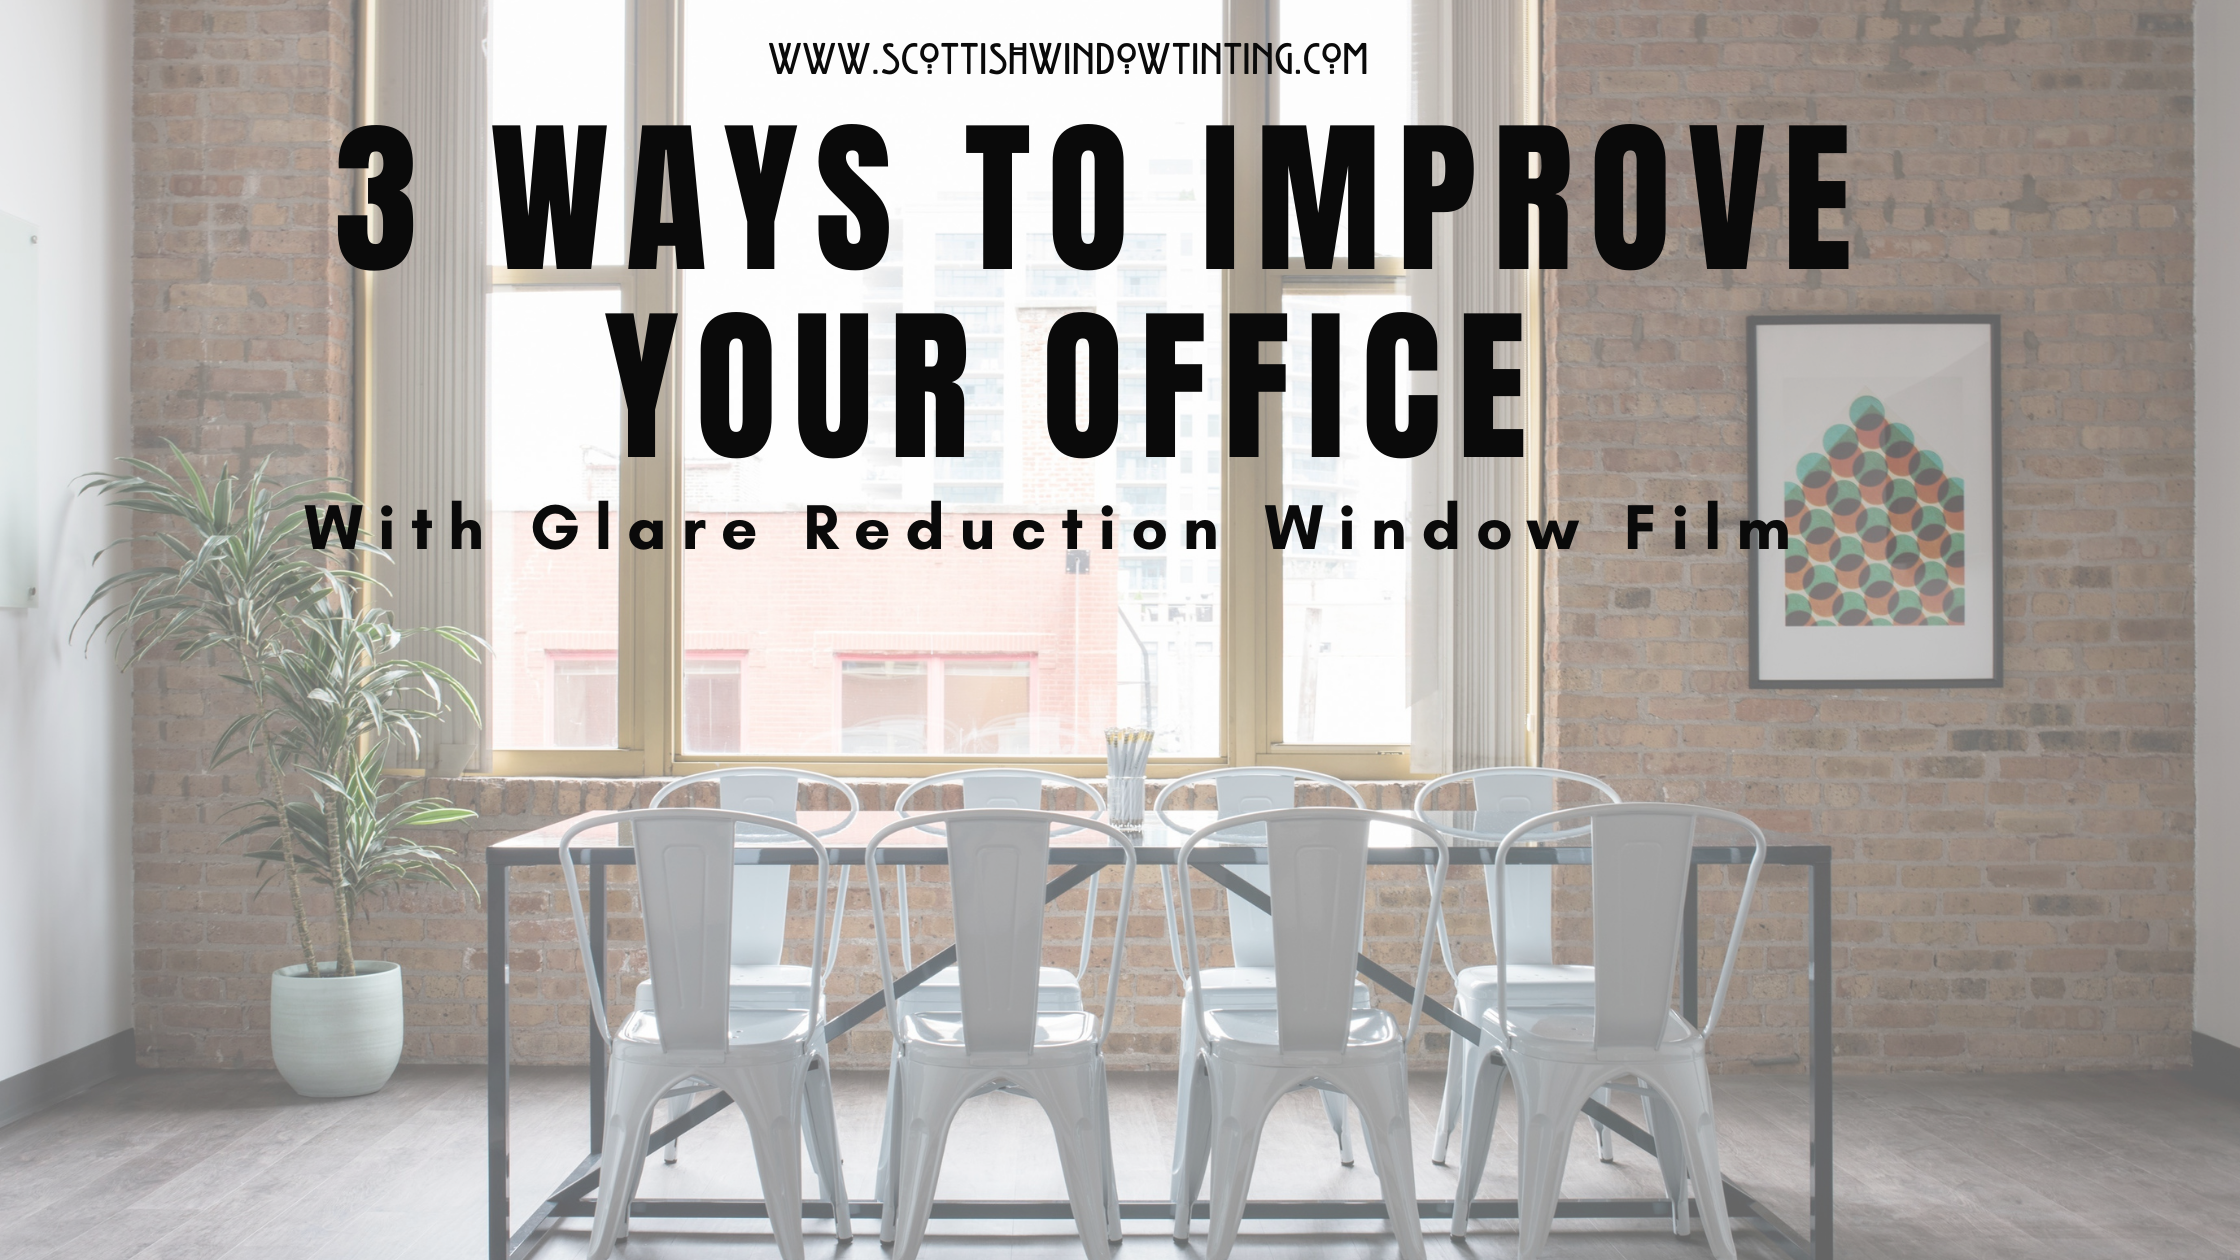 3 Ways to Improve Your San Antonio Office with Glare Reduction Window Film